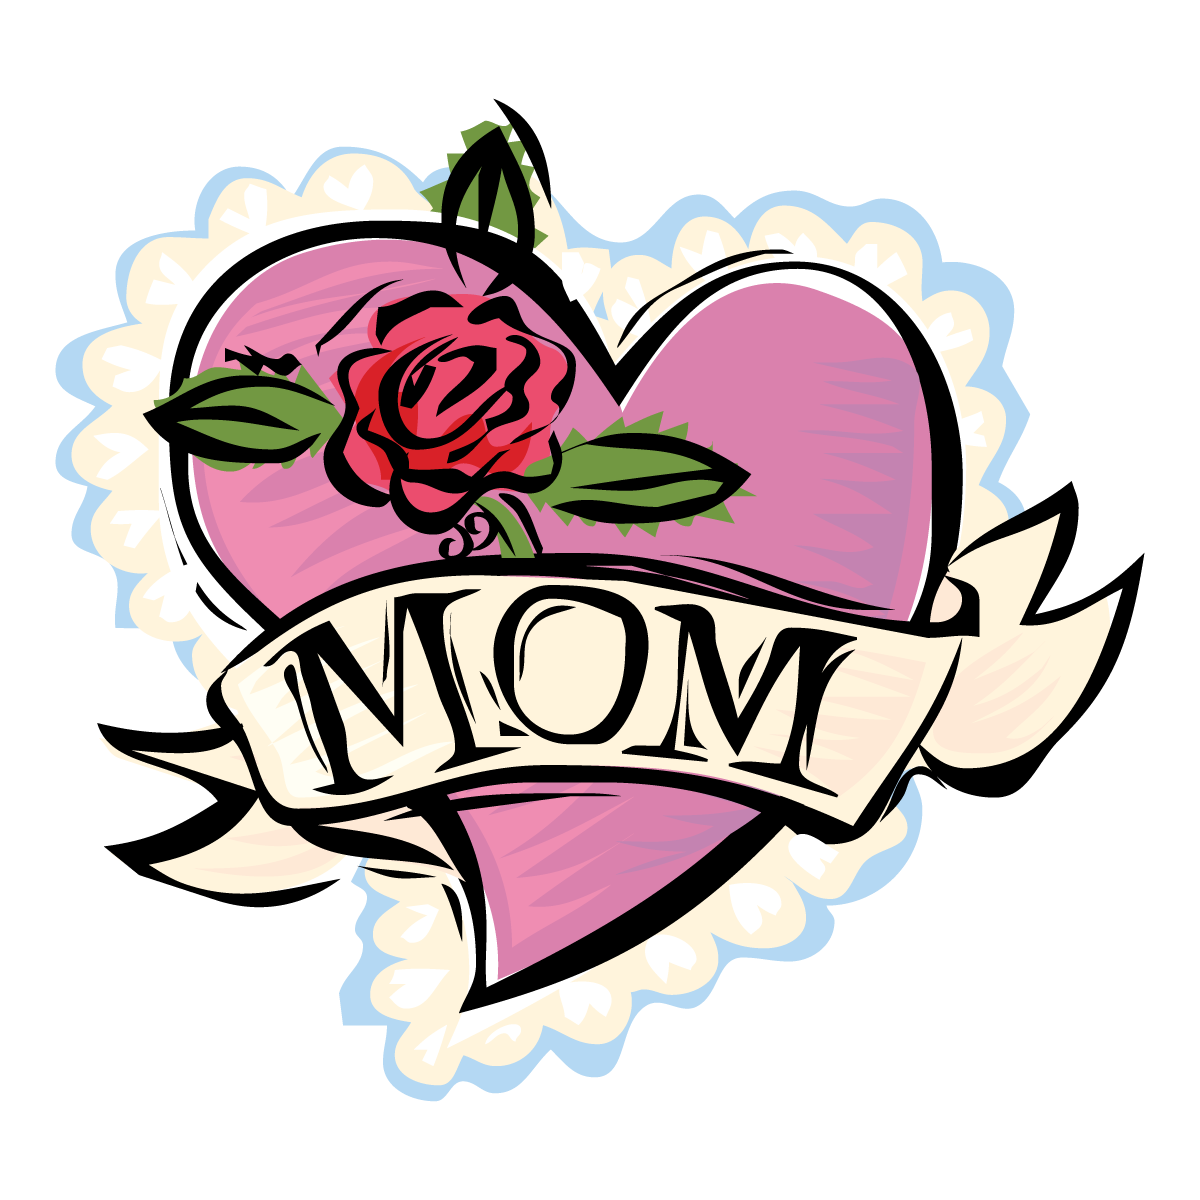 Christian funeral cliparts free. Words clipart mum